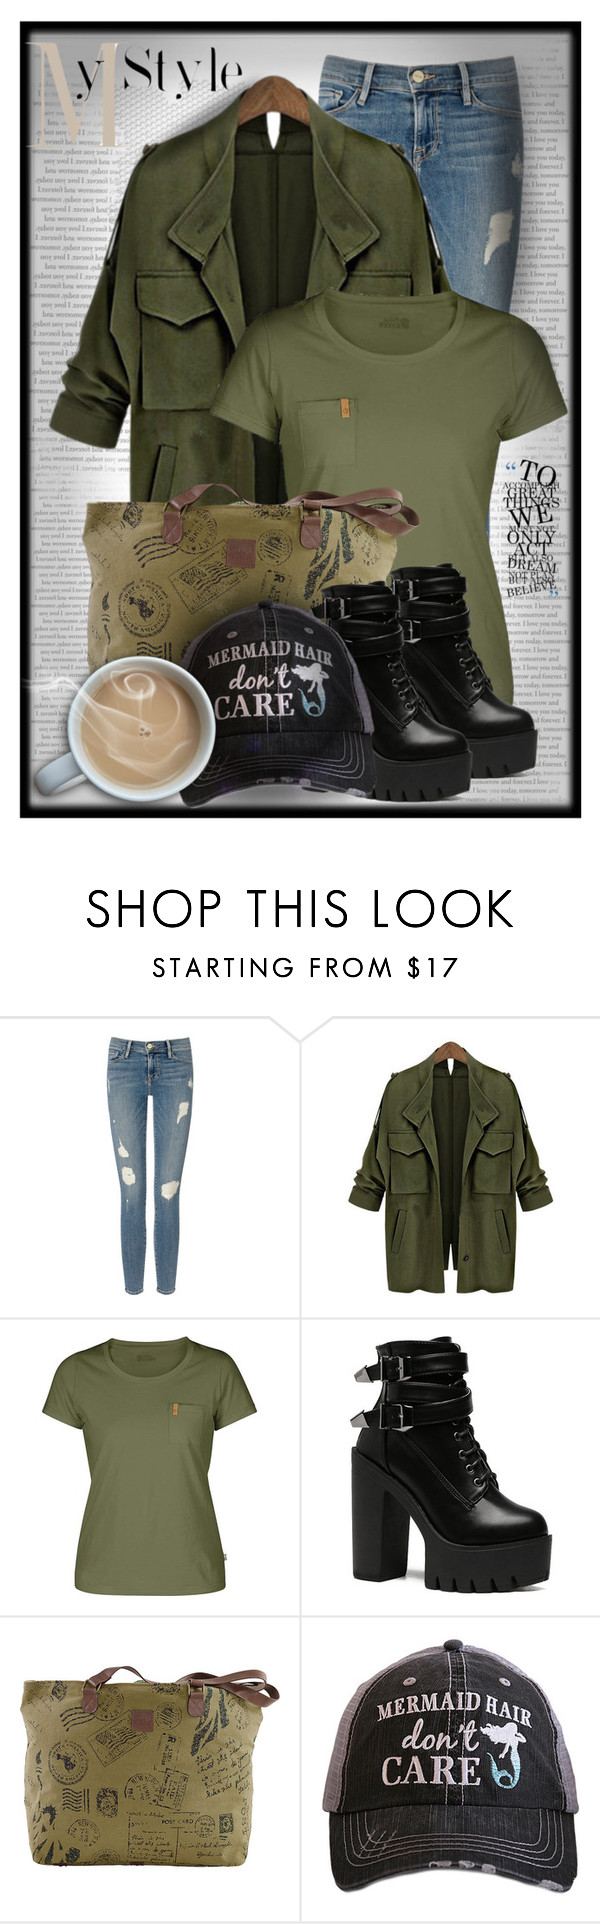 """My Style"" by nightowl59 ❤ liked on Polyvore featuring Frame Denim, Fjällräven, Katydid Collection and MyStyle"